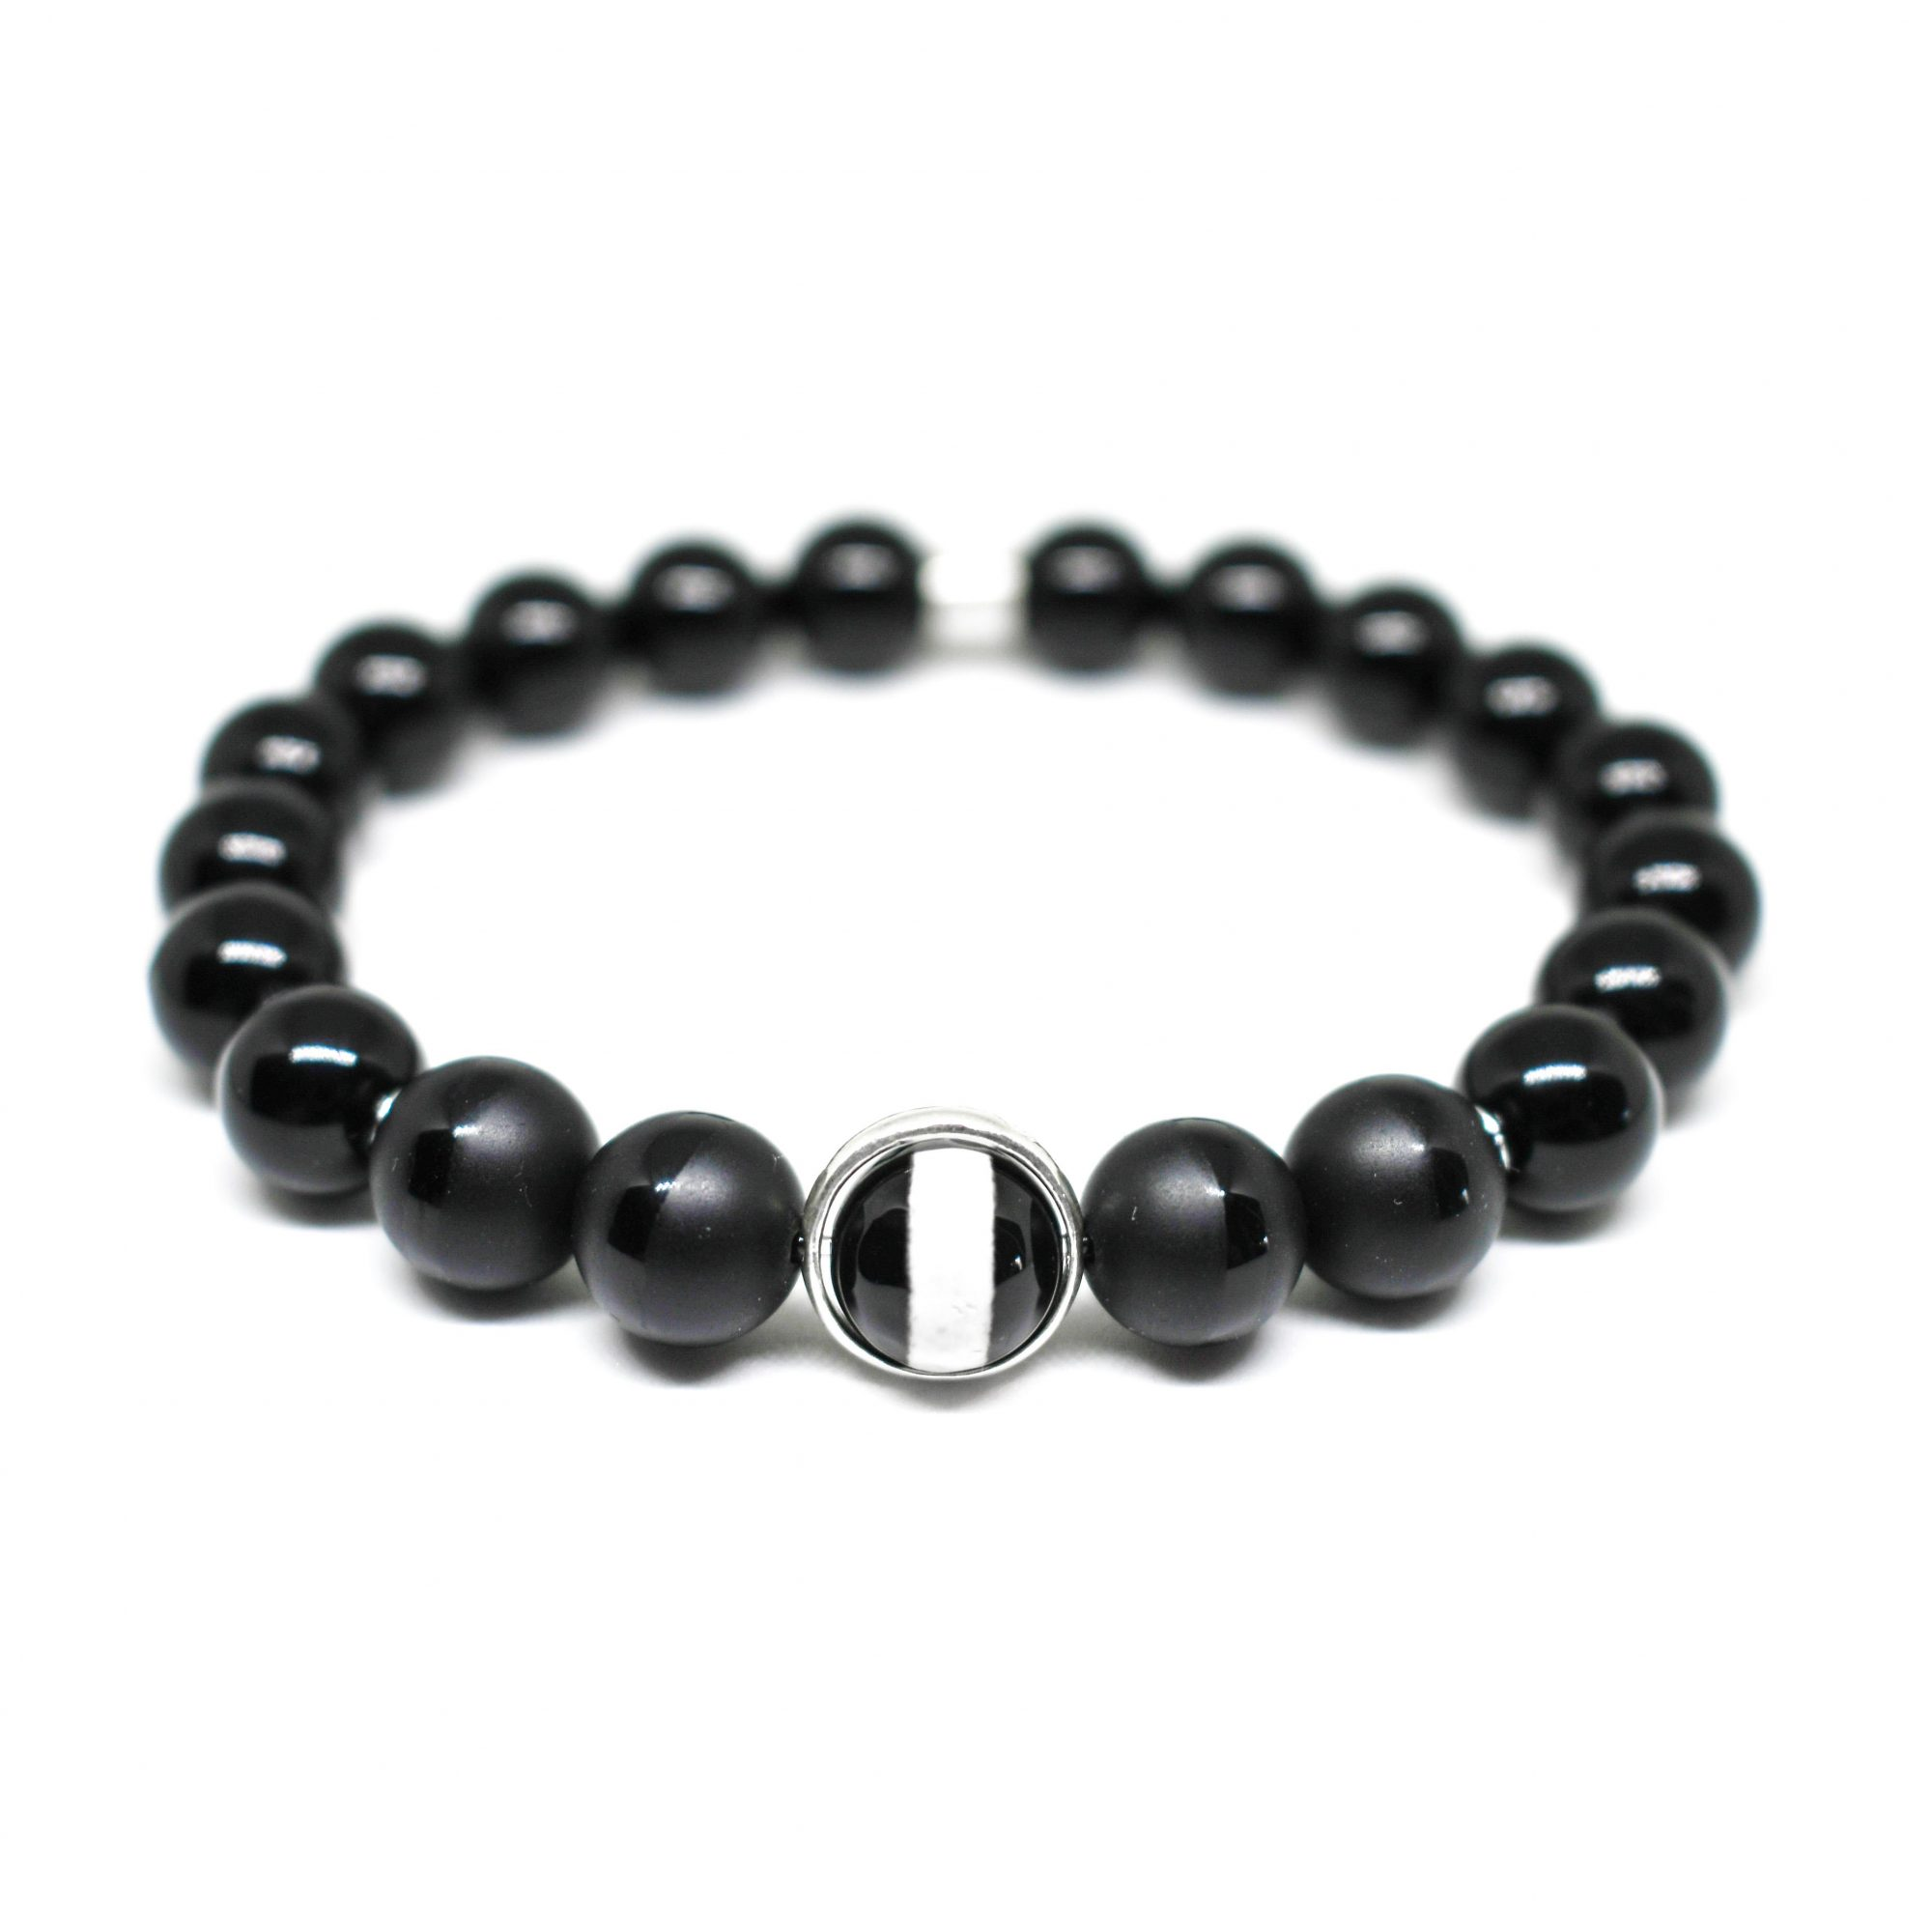 natural beaded bracelets mens hand boys buddha bangle product stone couple jewelry black men beads bracelet gift